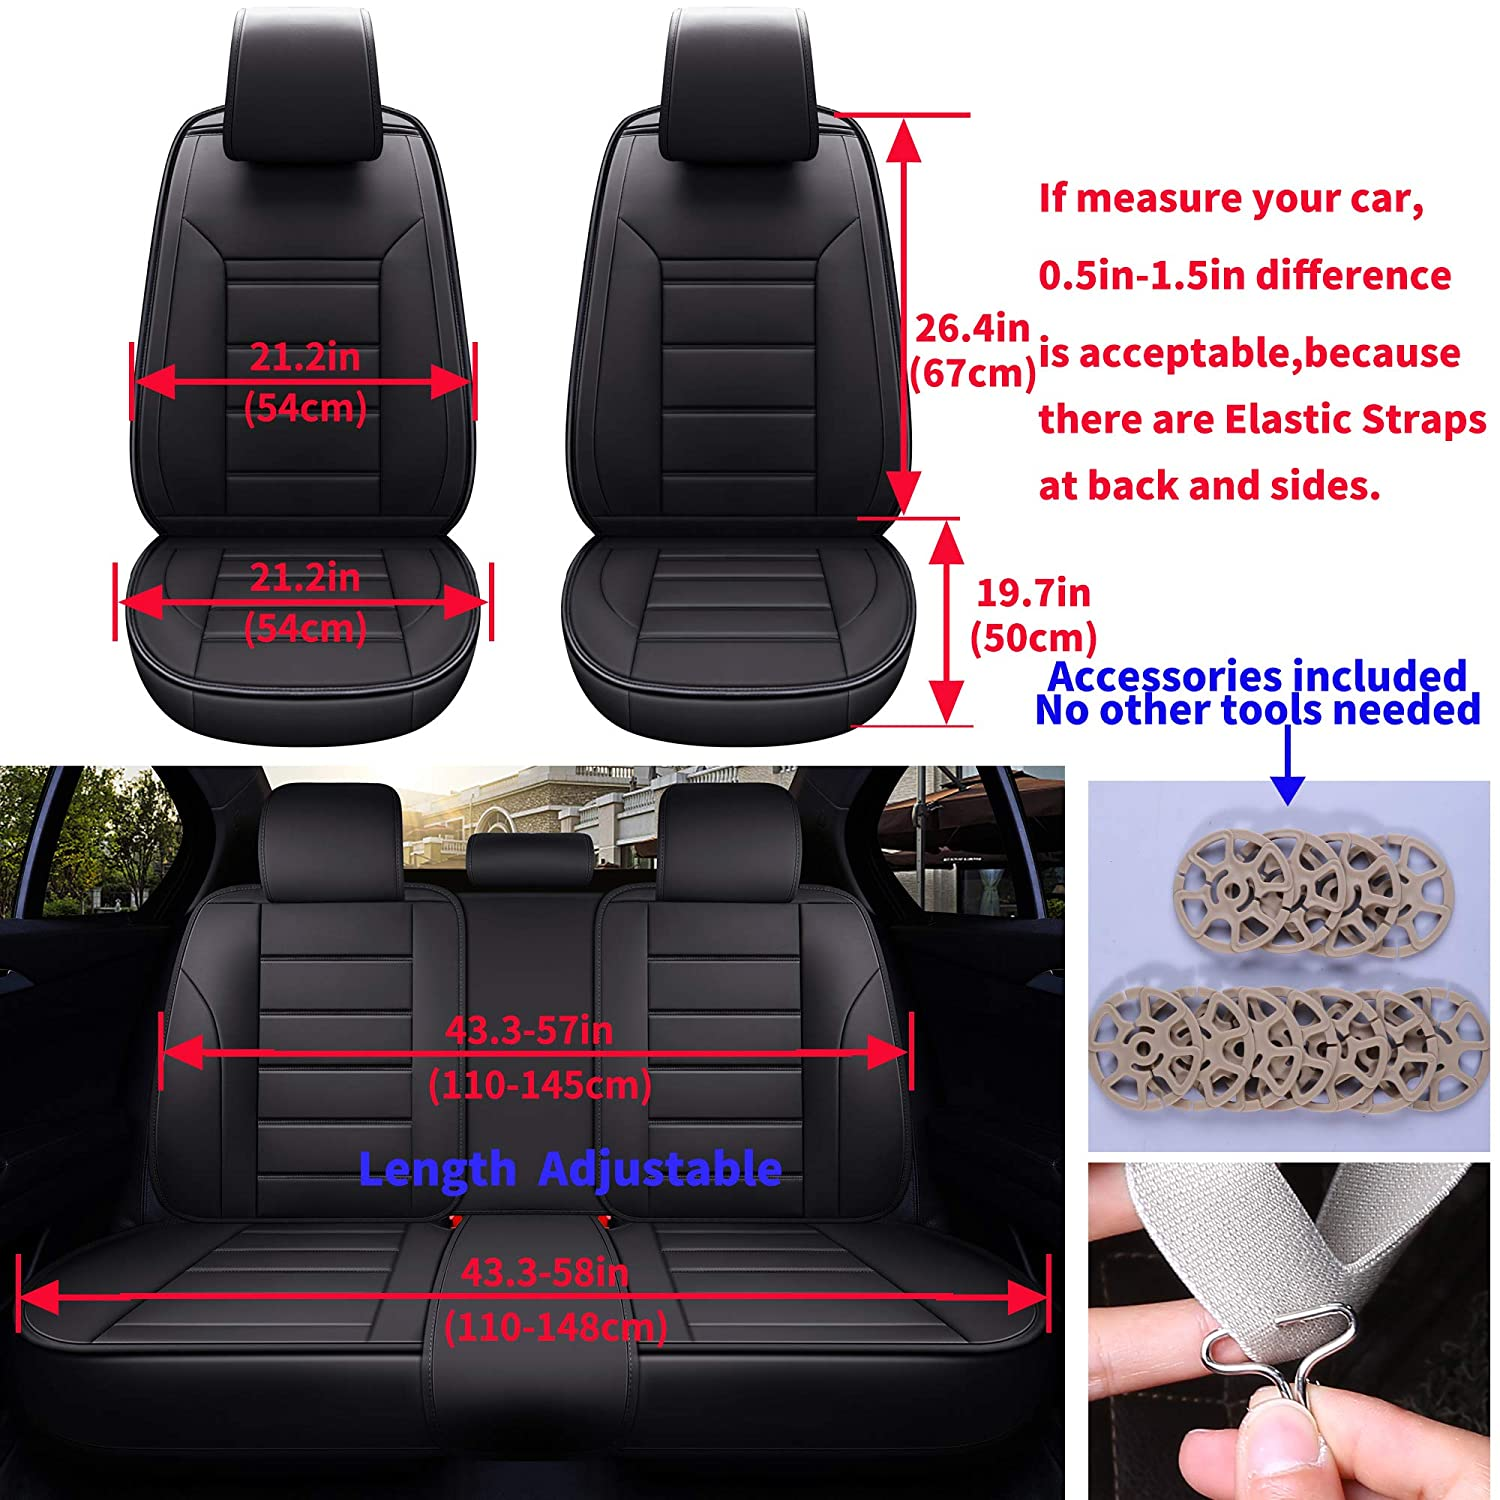 Double Line Pure Black INCH EMPIRE Car Seat Cover Full Set Waterproof PU Leather Cushions Universal Fit Simple Style Front and Rear-Adjustable Length